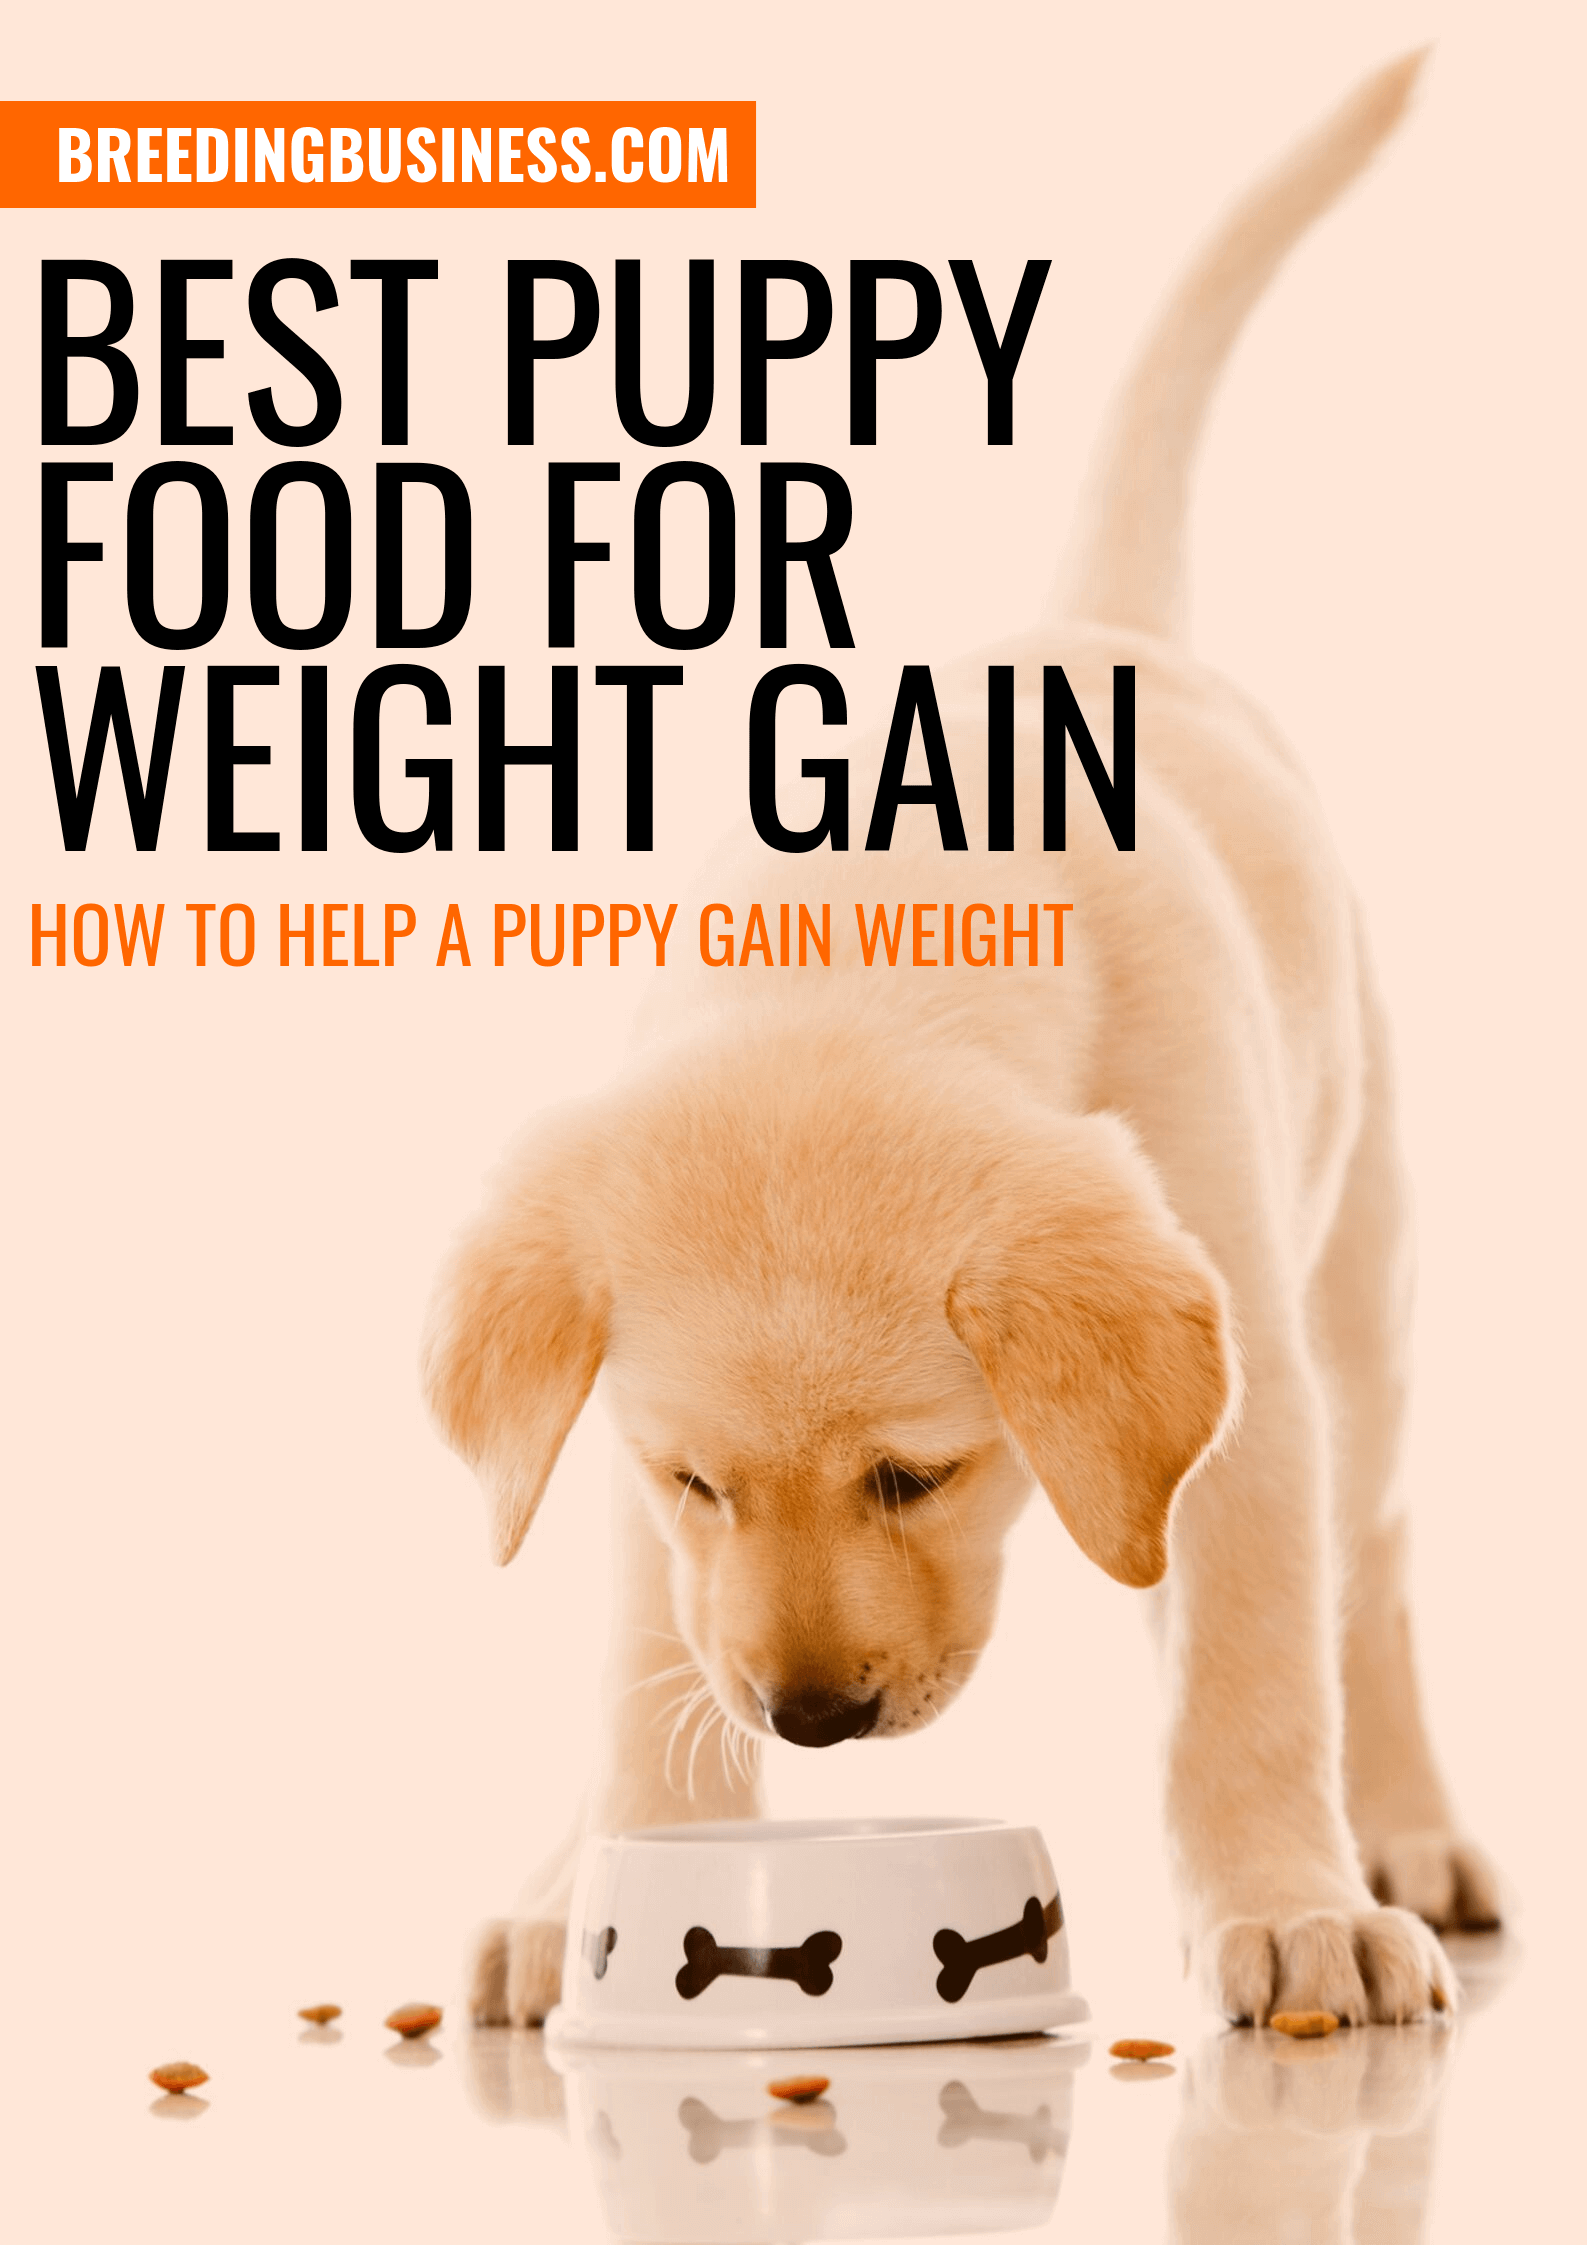 5 Best Puppy Foods for Weight Gain